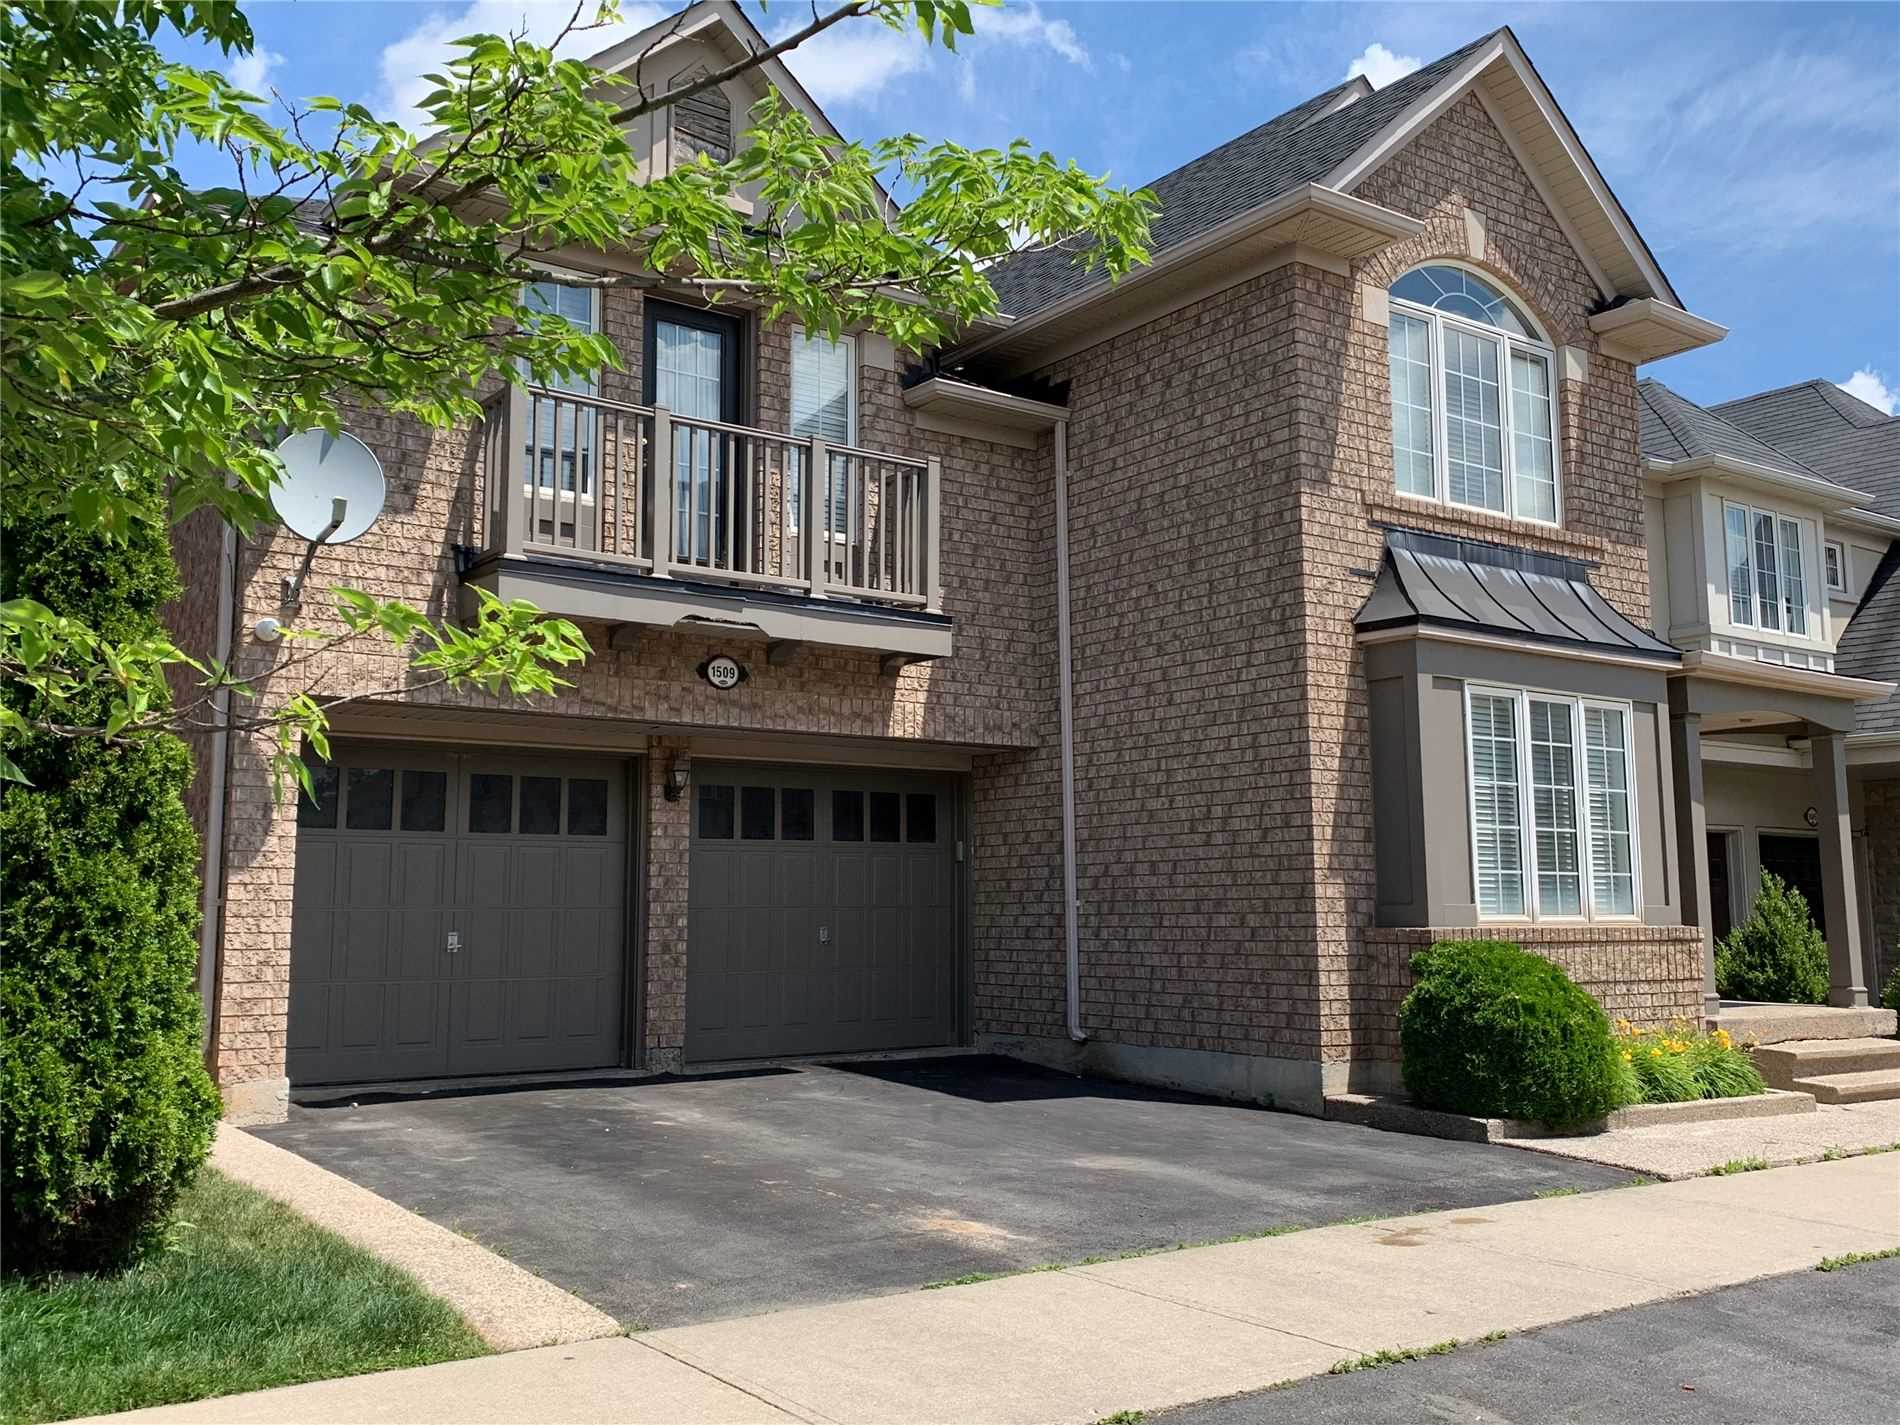 1509 Marshall Crescent Cres, Milton, L9T6T8, 4 Bedrooms Bedrooms, ,5 BathroomsBathrooms,Detached,For Sale,Marshall Crescent,W4808425